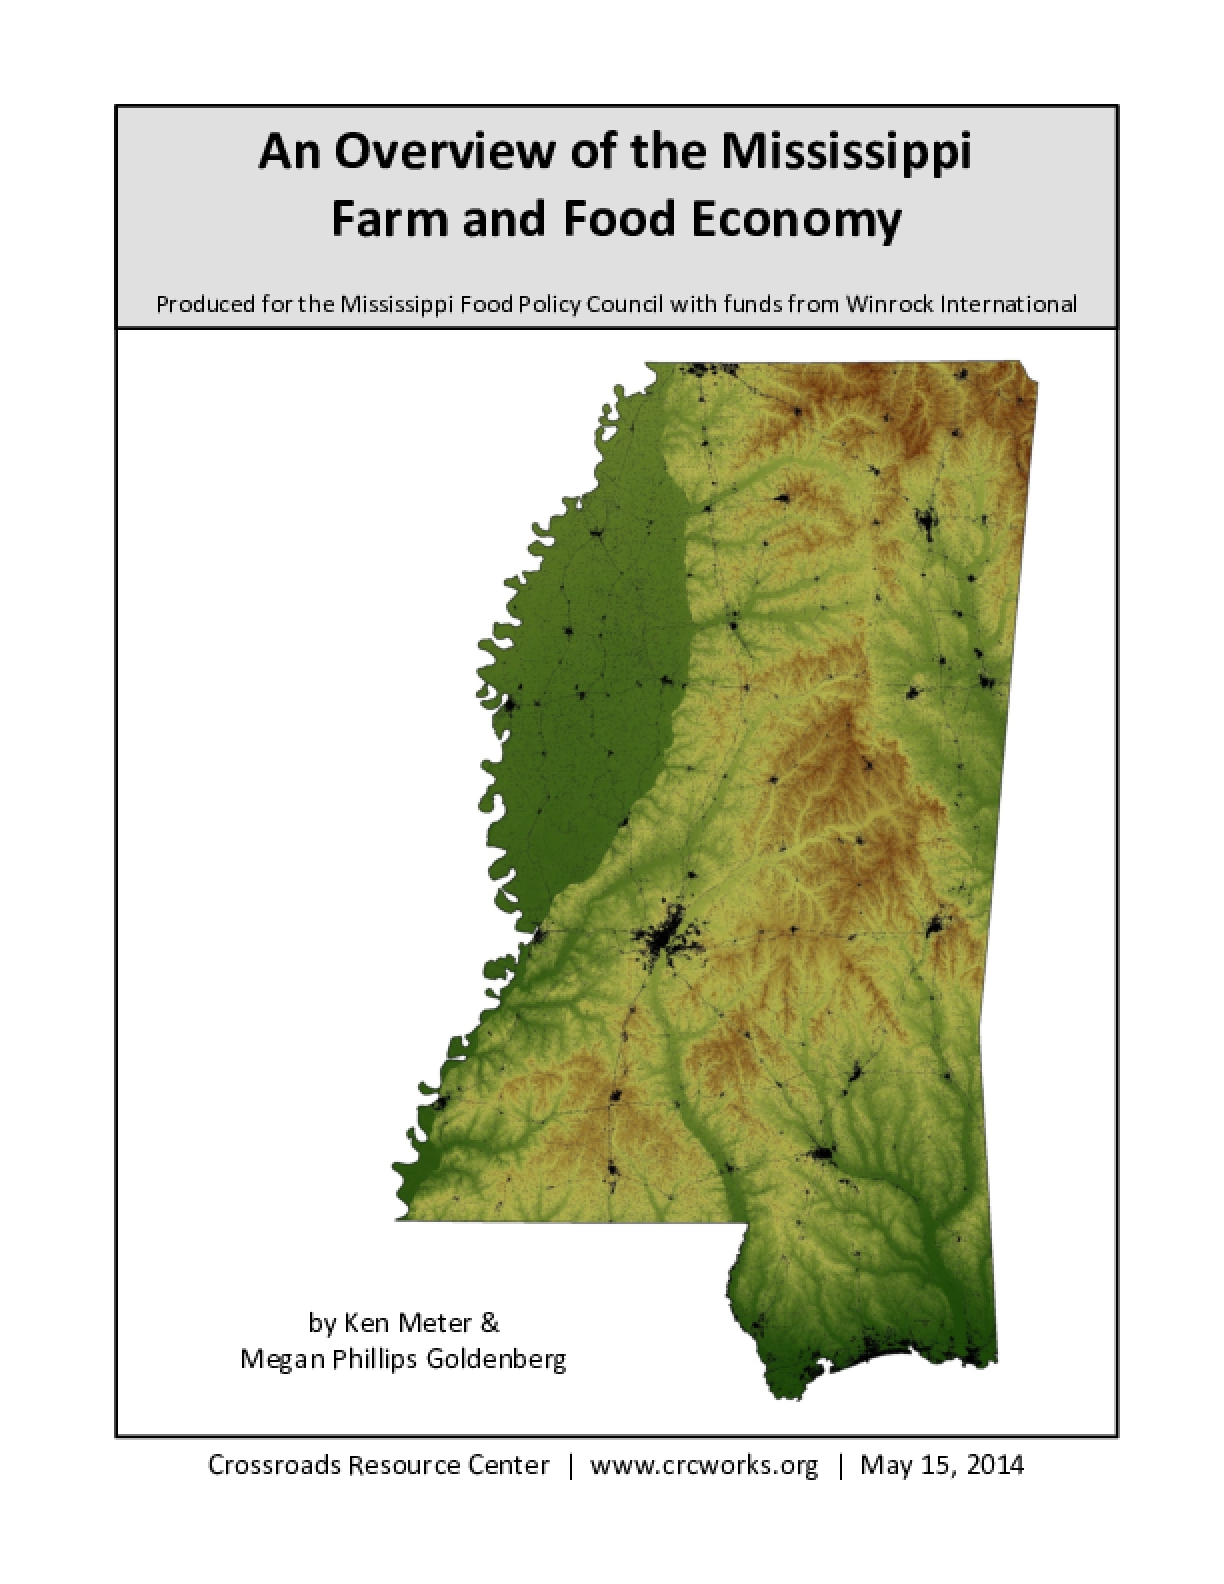 An Overview of the Mississippi Farm and Food Economy